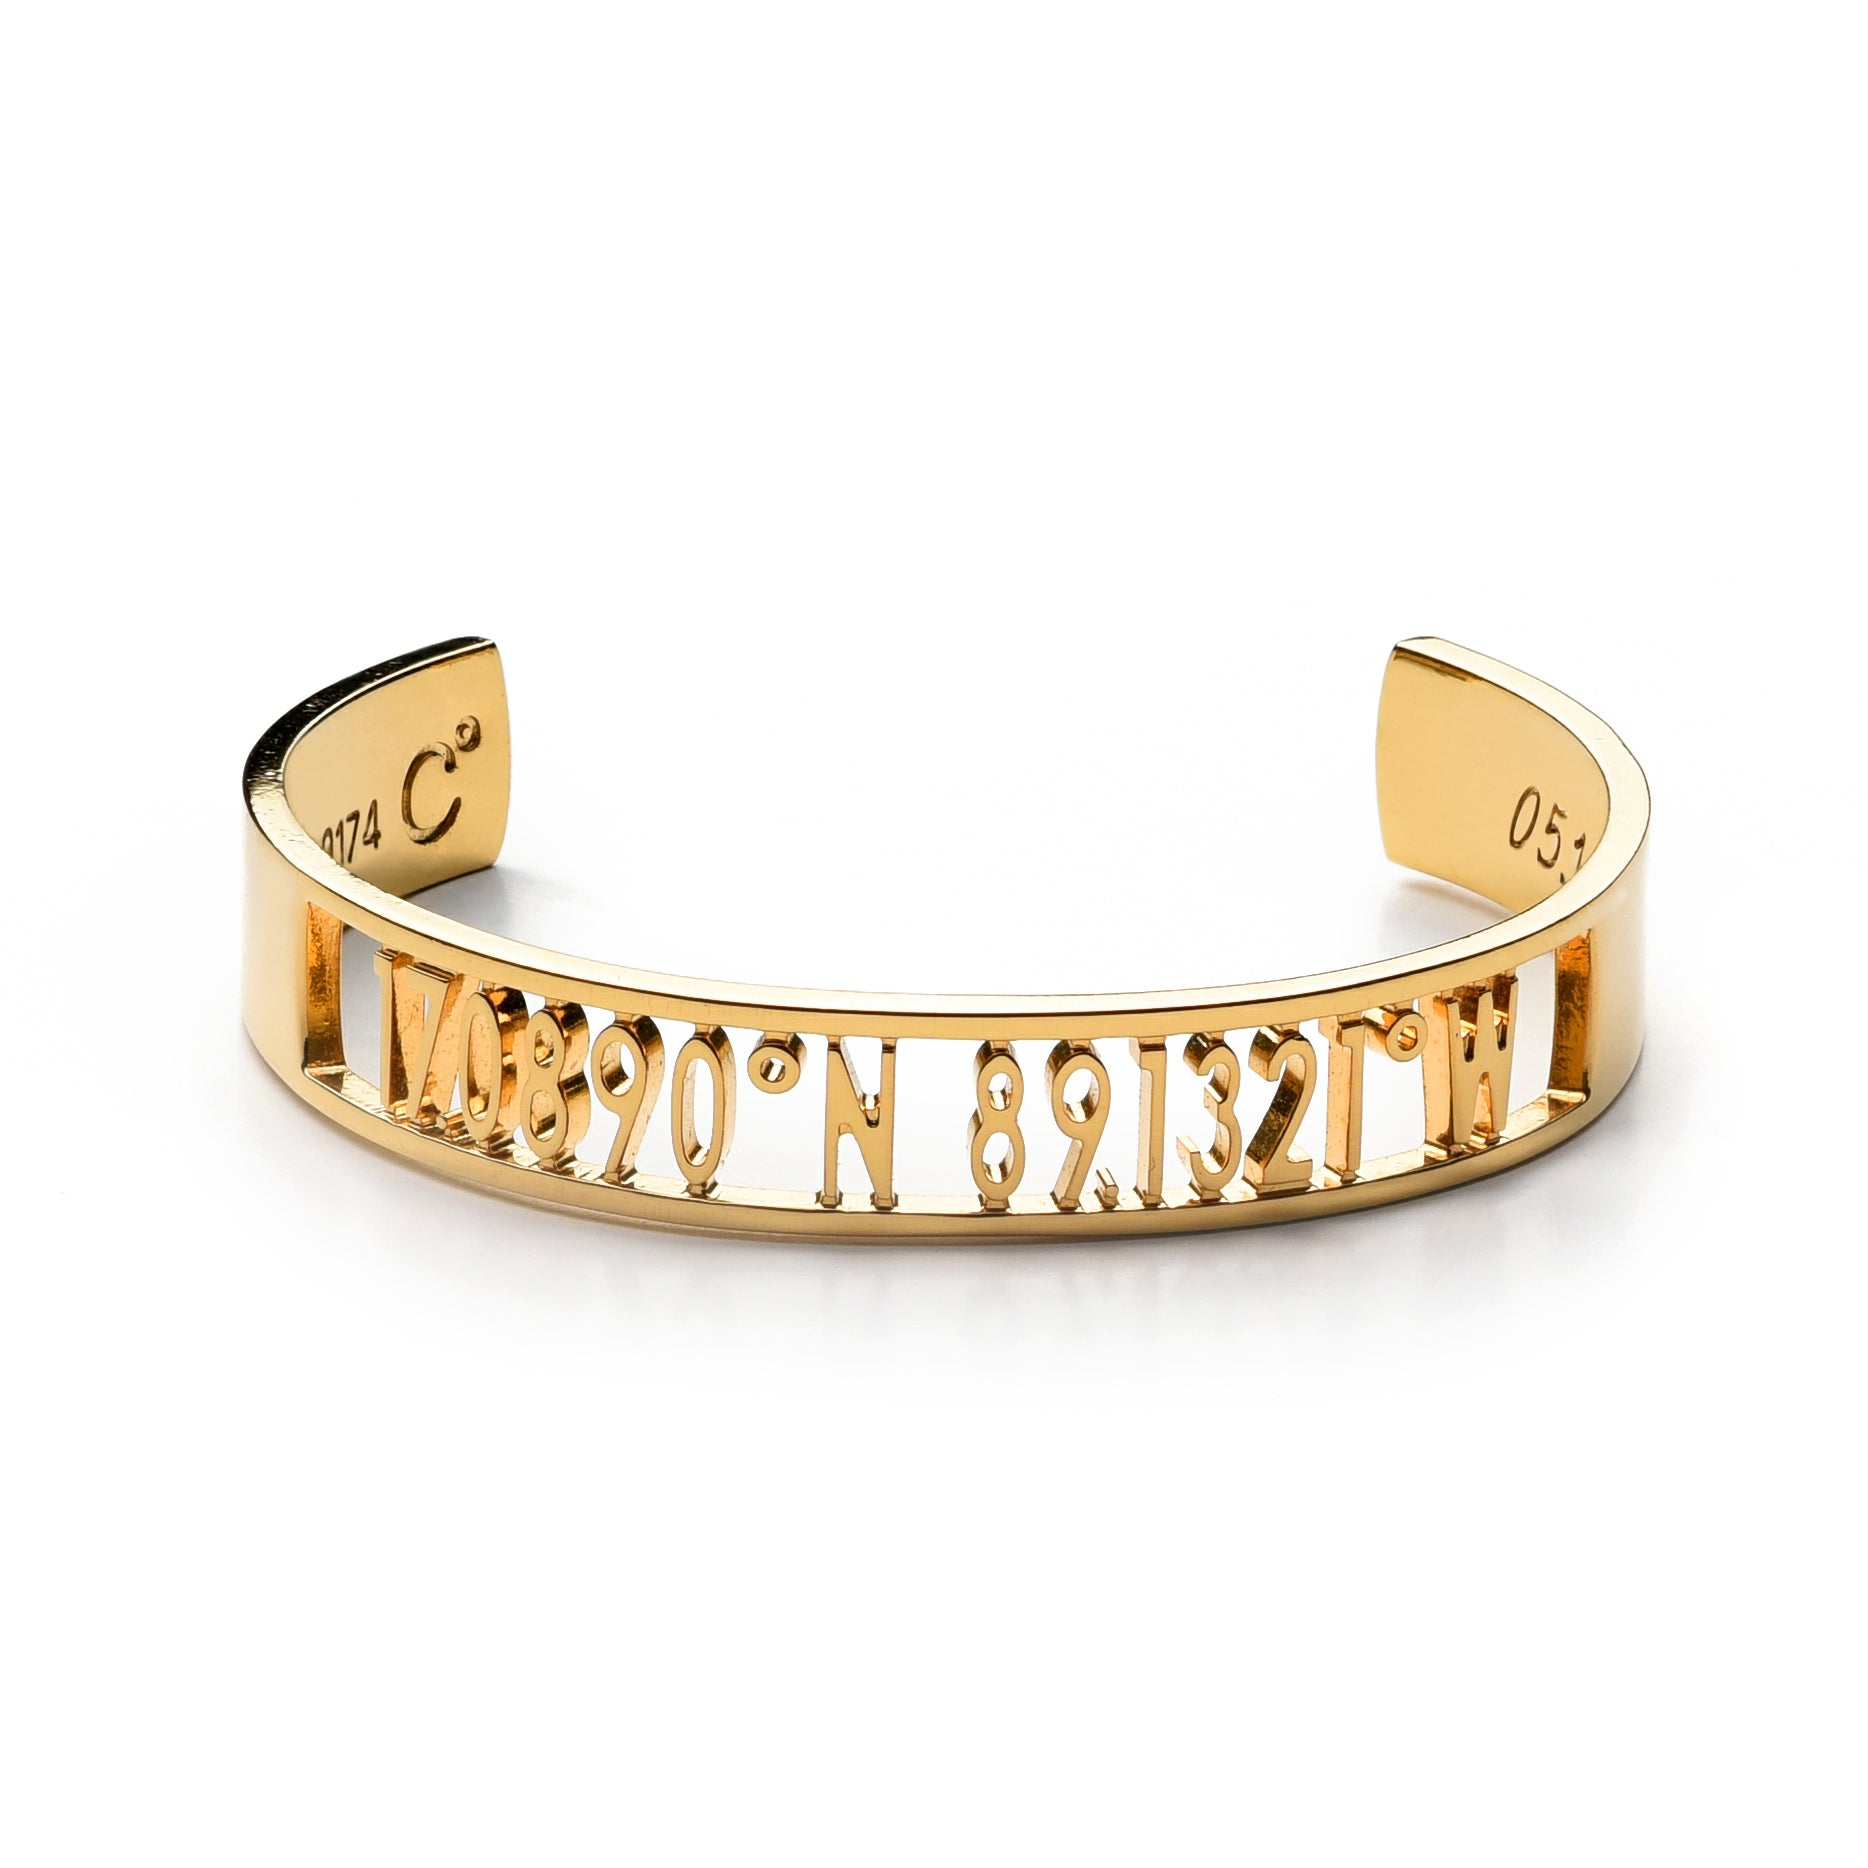 A wide gold cuff bracelet with carved out inscription